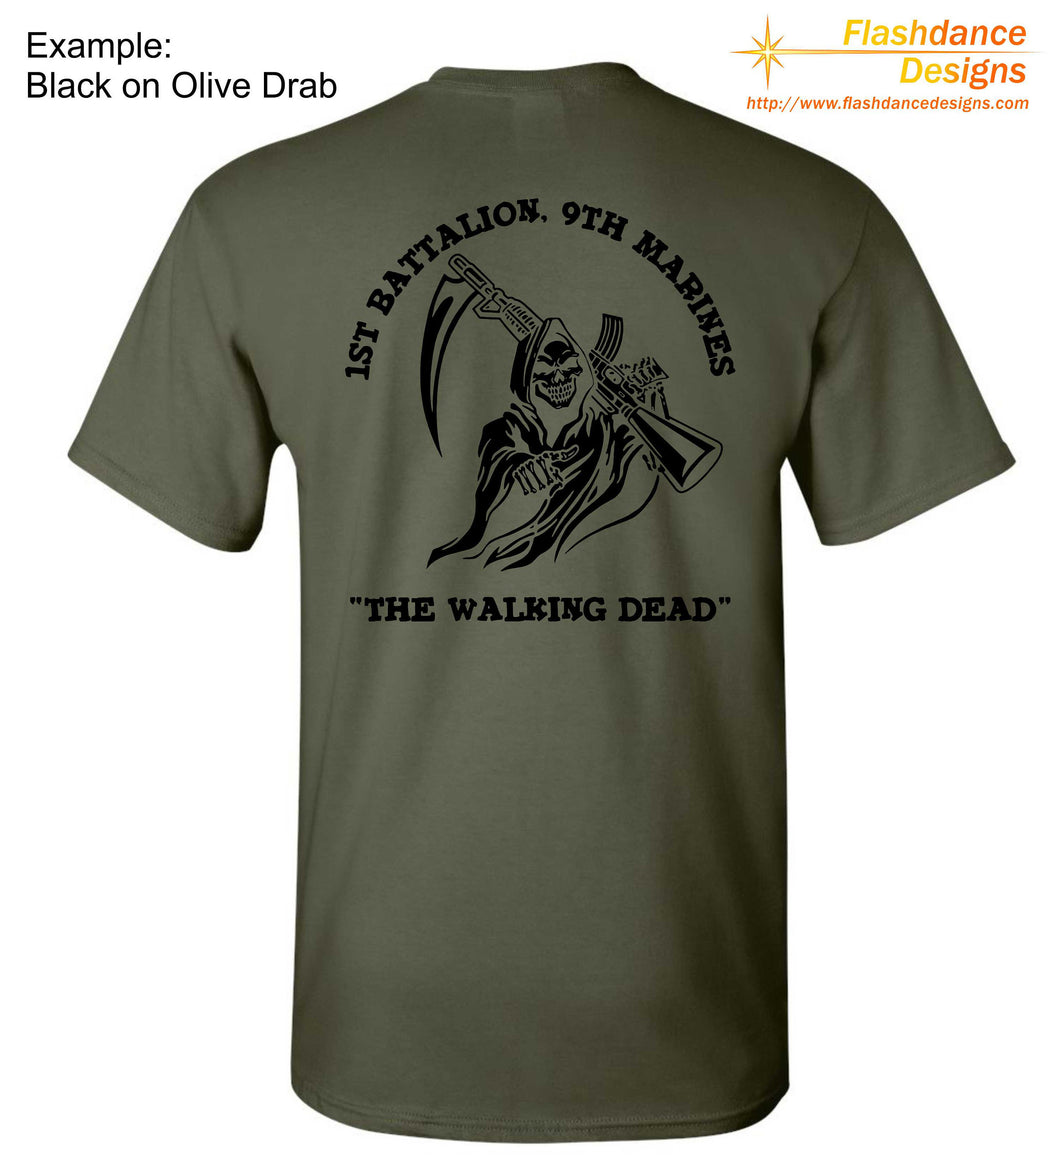 United States Marine Corps (USMC) heavy cotton tee shirt with  the 1st Battalion, 9th Marines The Walking Dead logo and text on the back.